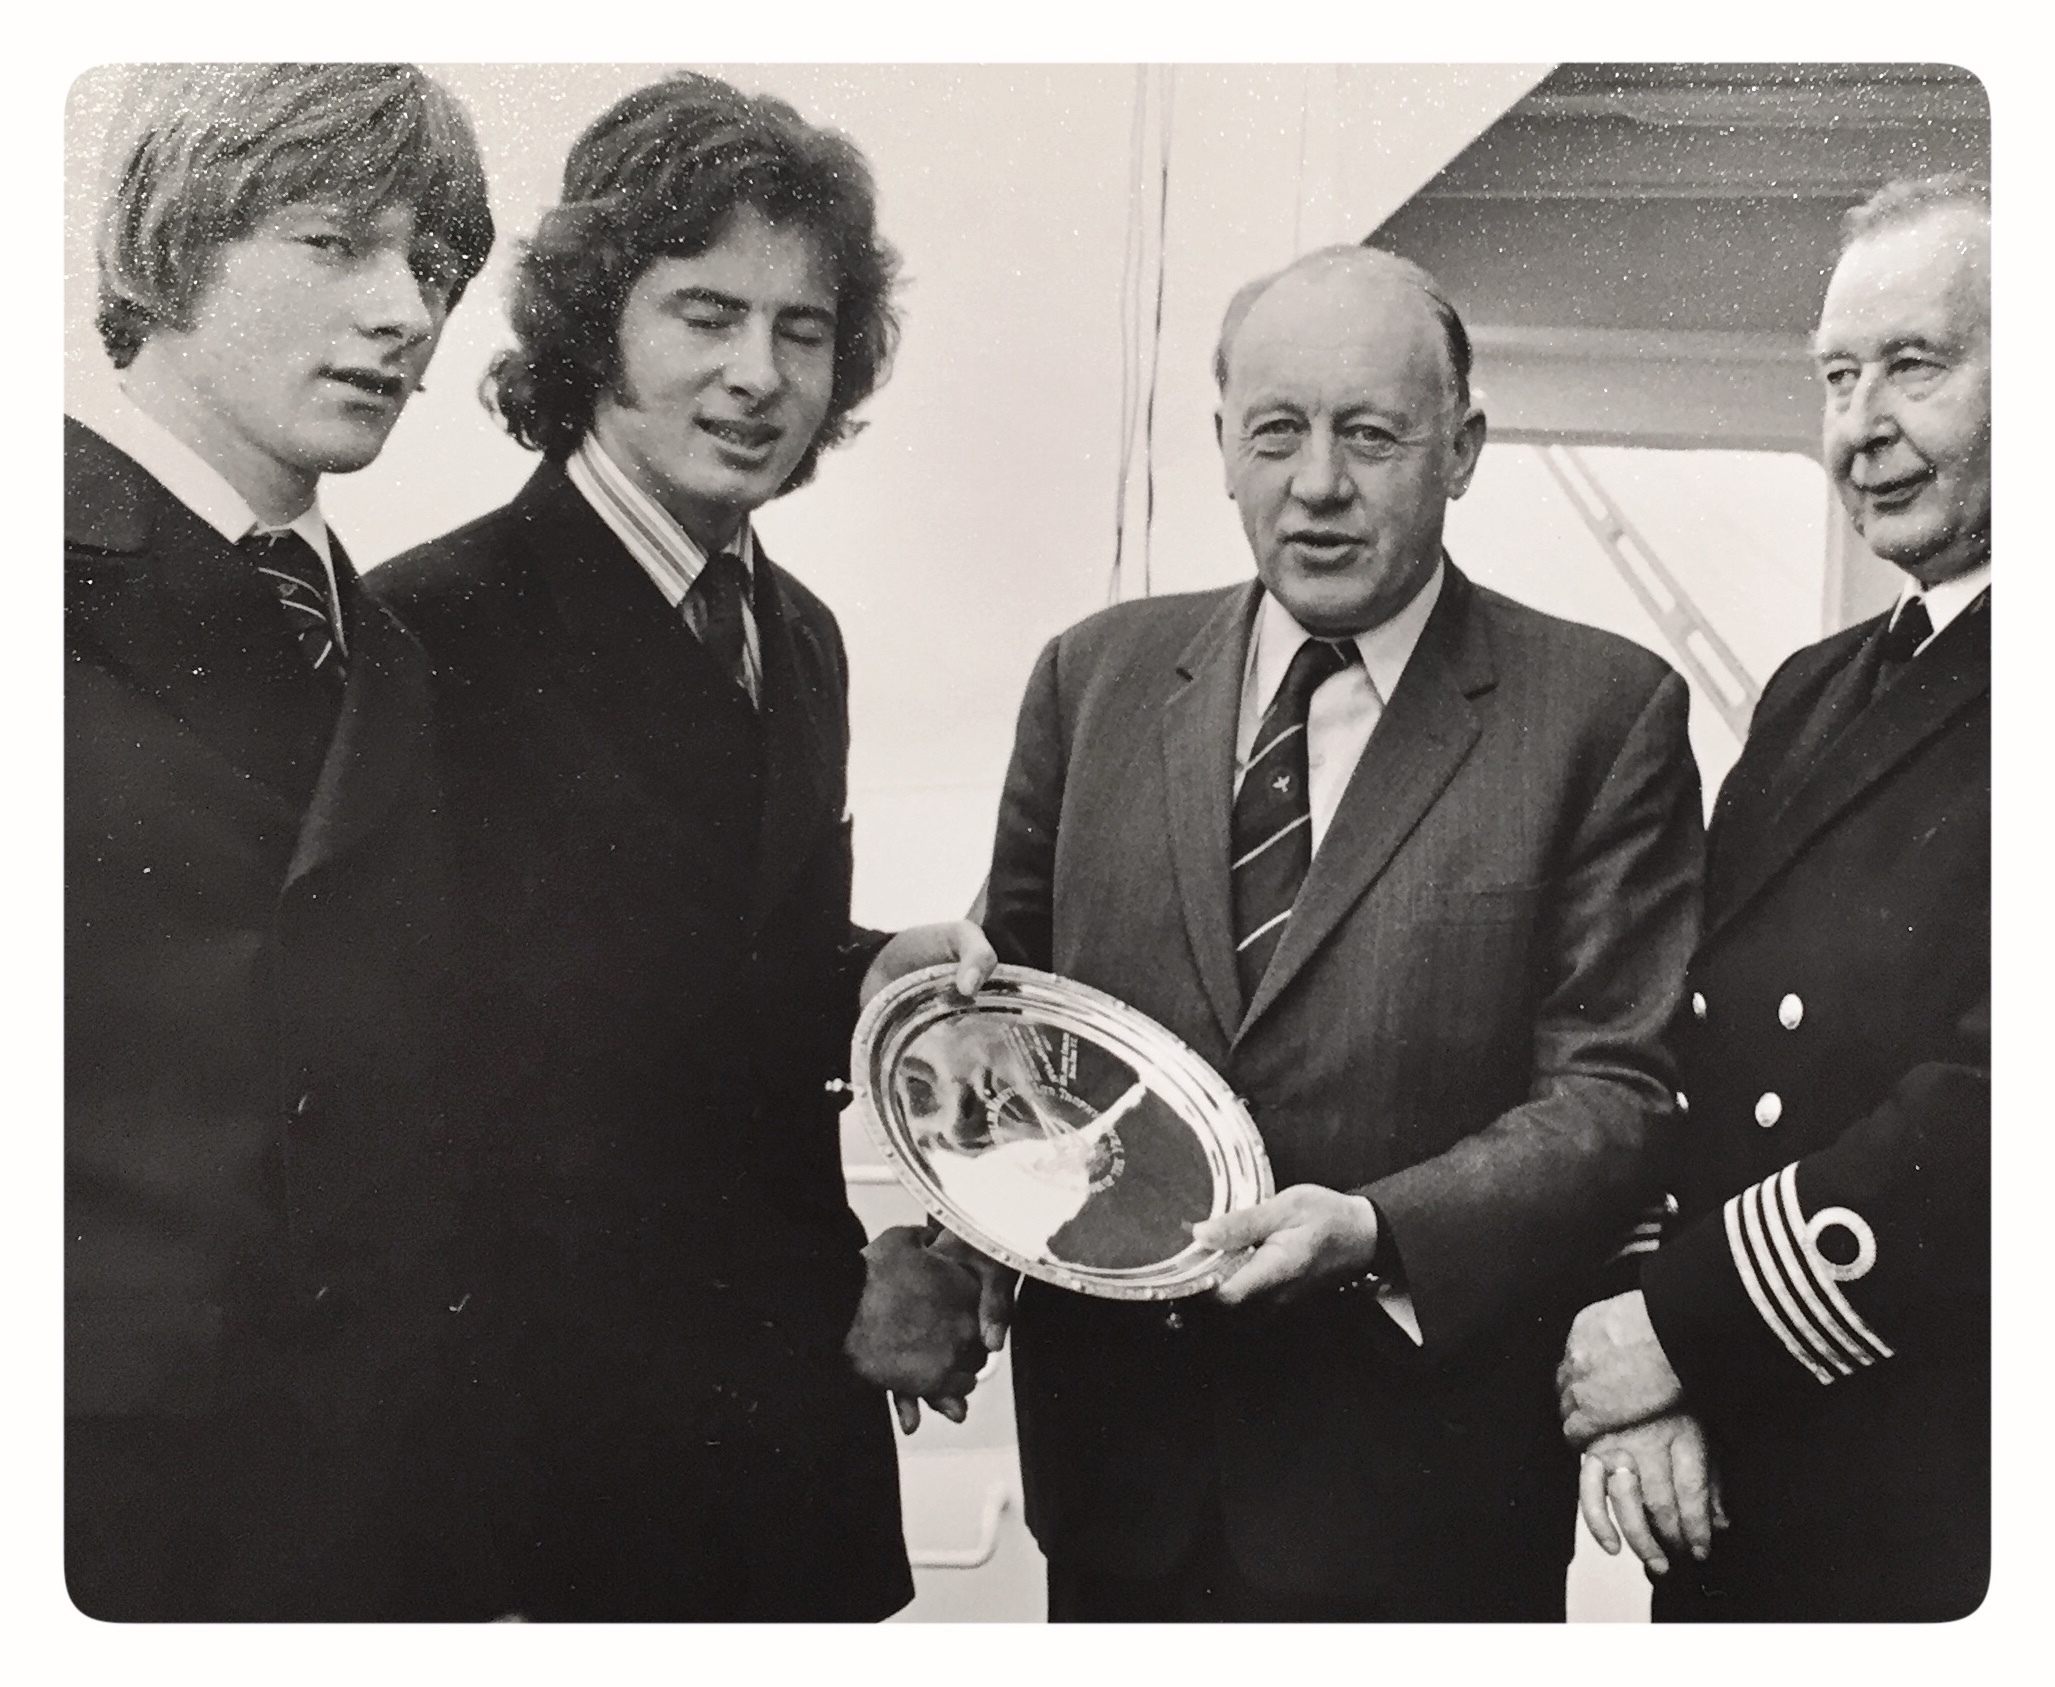 Patrick Jameson presentes Joe English with the ISA Junior Helmsman's Trophy in 1974 - Left to right: Nei Keneflick, Joe English, Patrick Jameson and the Captain of the RV Tyro, from which the trophy was presented each year in Dublin Port